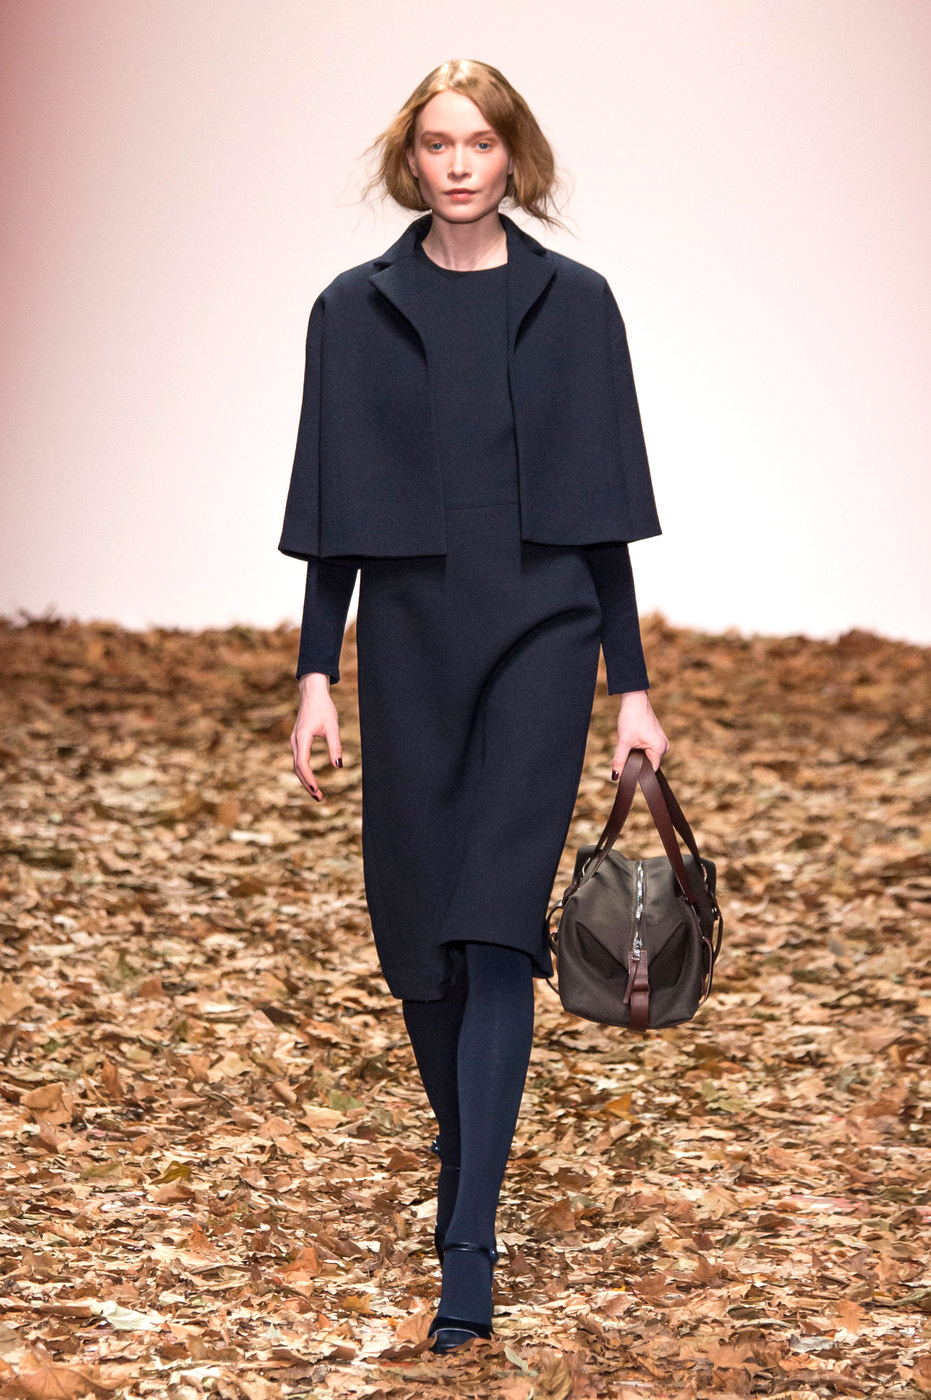 Best looks from London fashion week 2015 / Jasper Conran